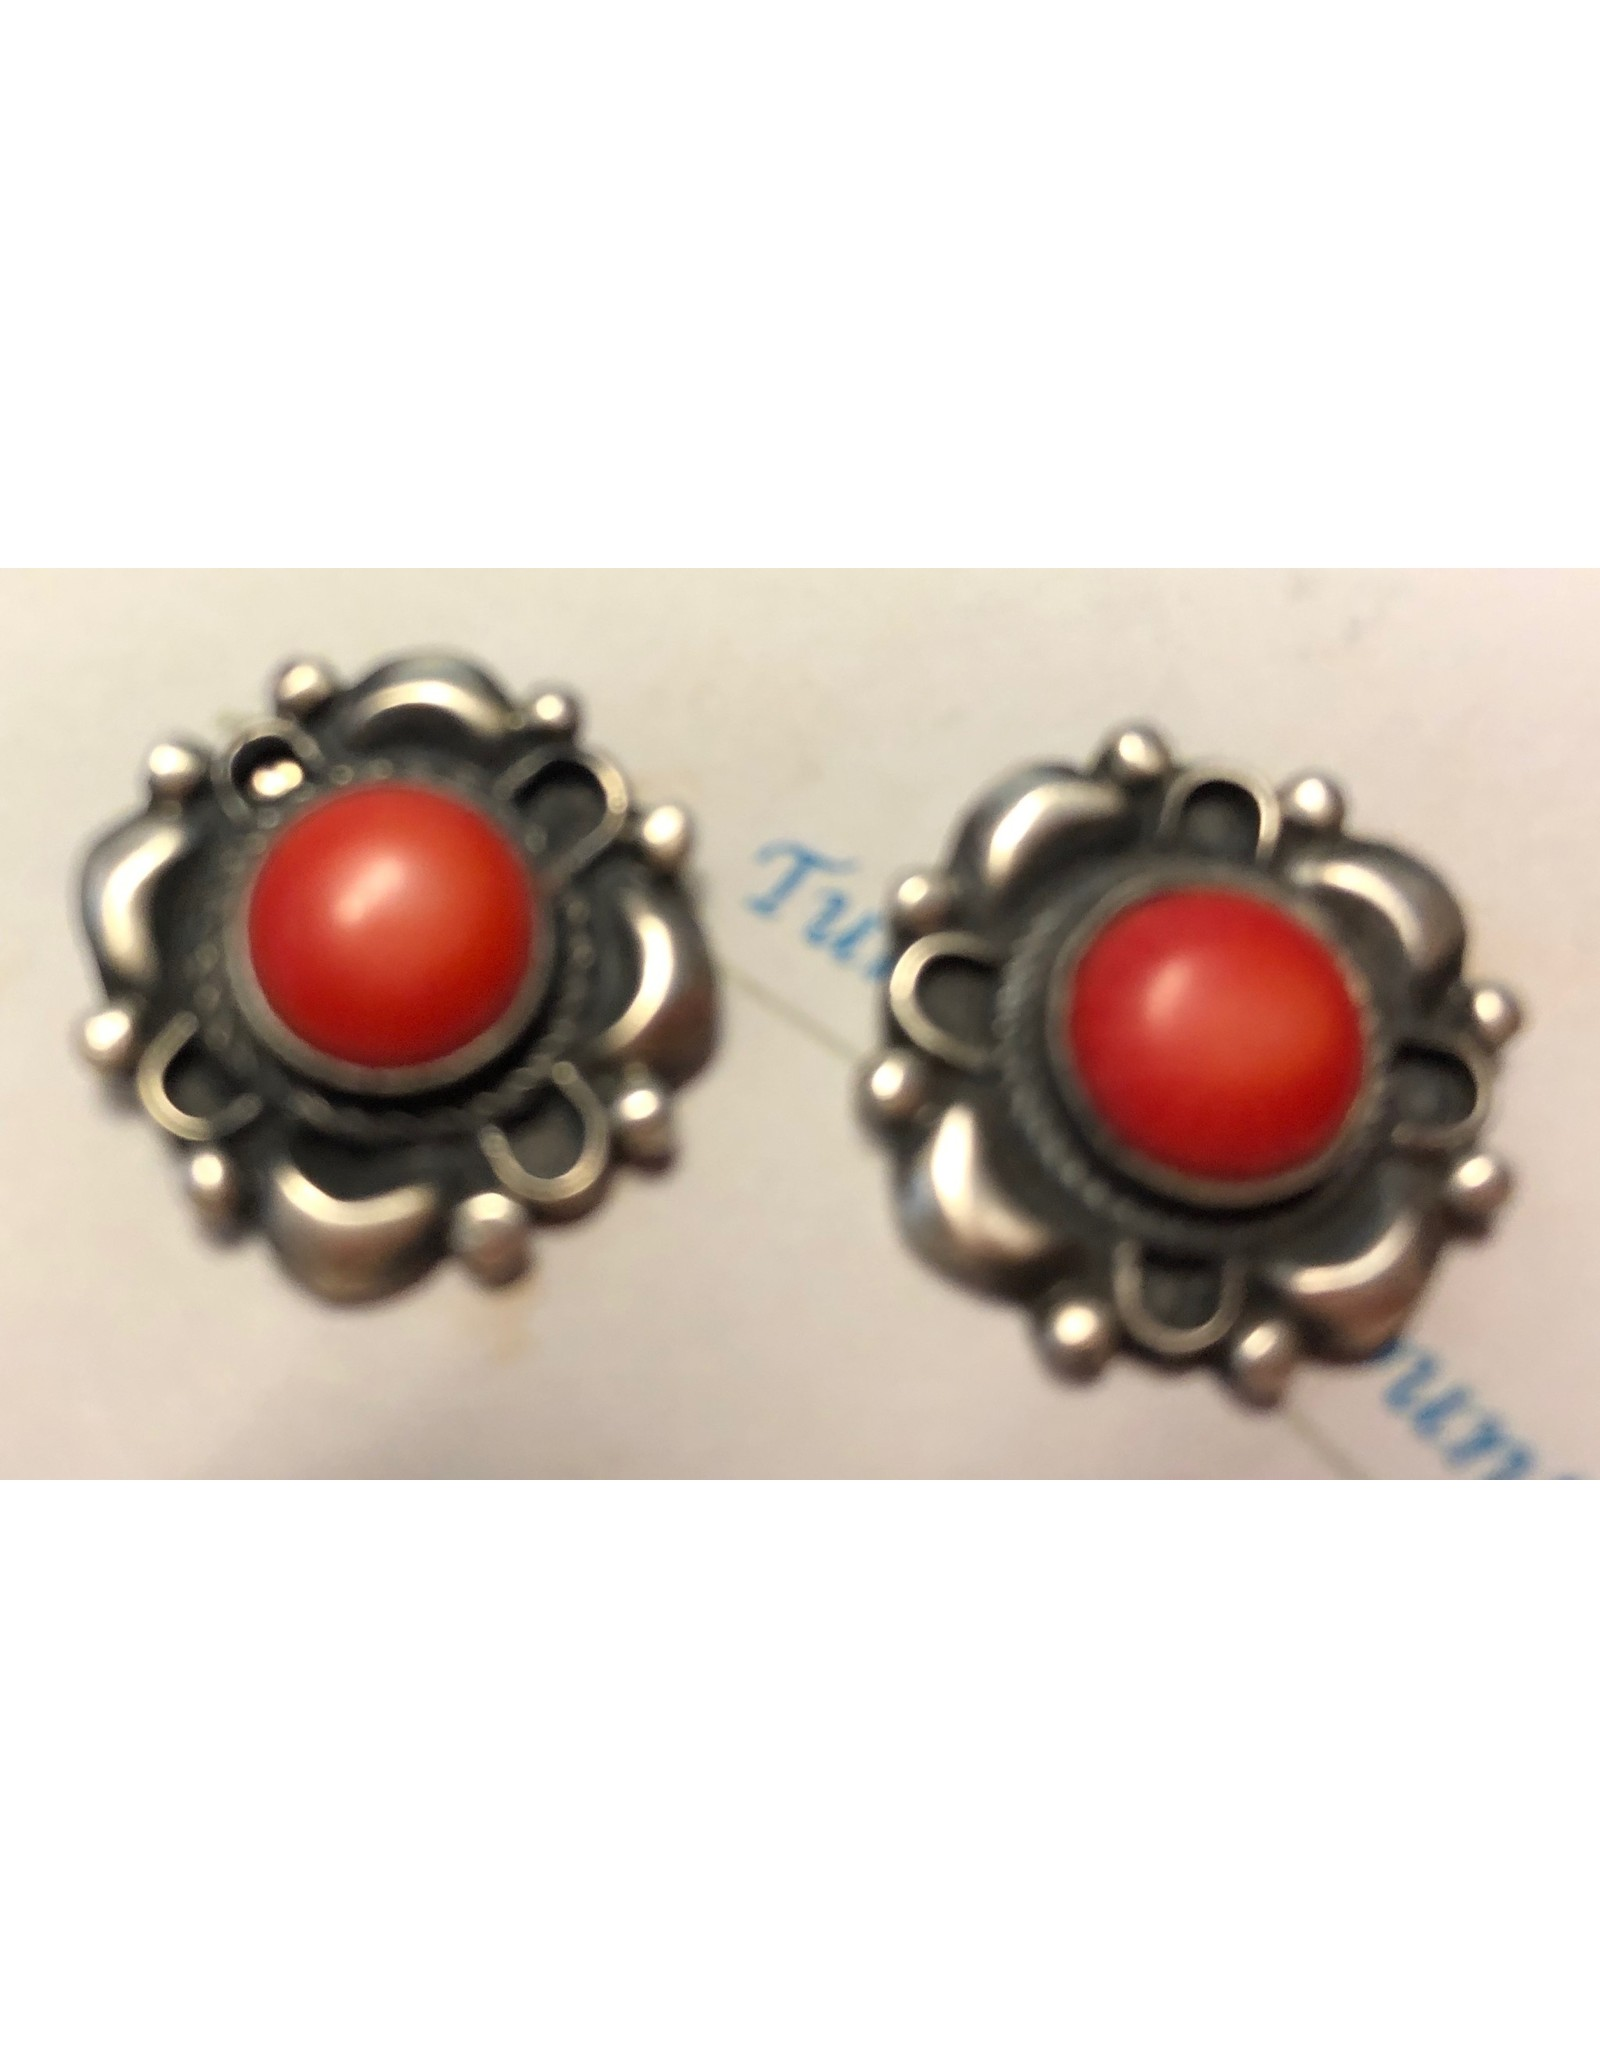 Rare Finds CORAL & STERLING EARRINGS, post, Native American Artist Design, RARE